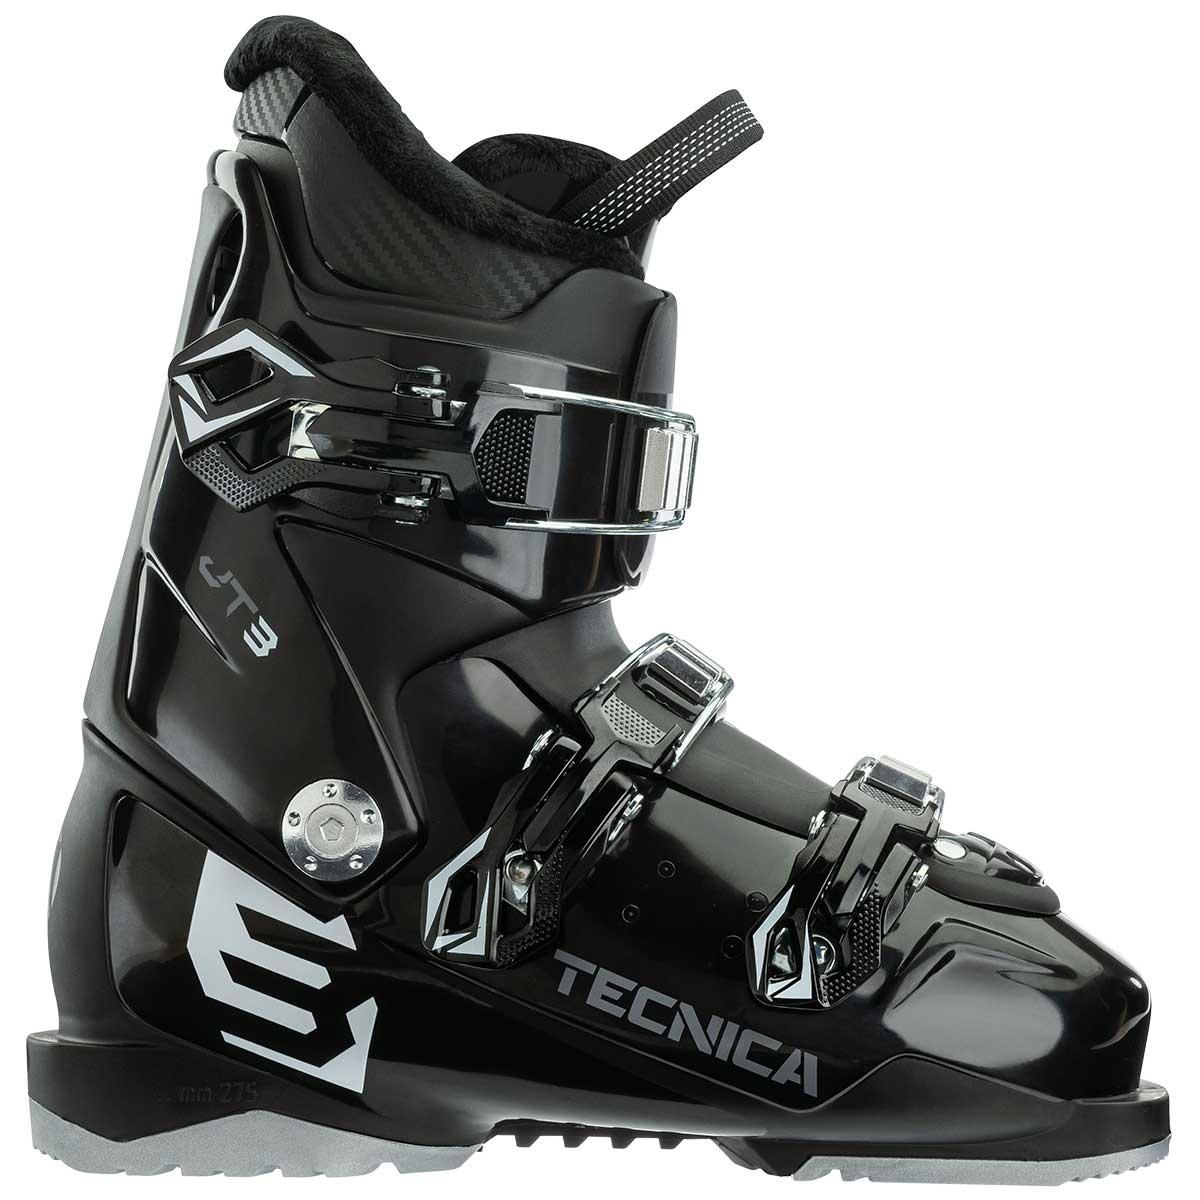 Tecnica JT 3 Boys' Ski Boot in Black